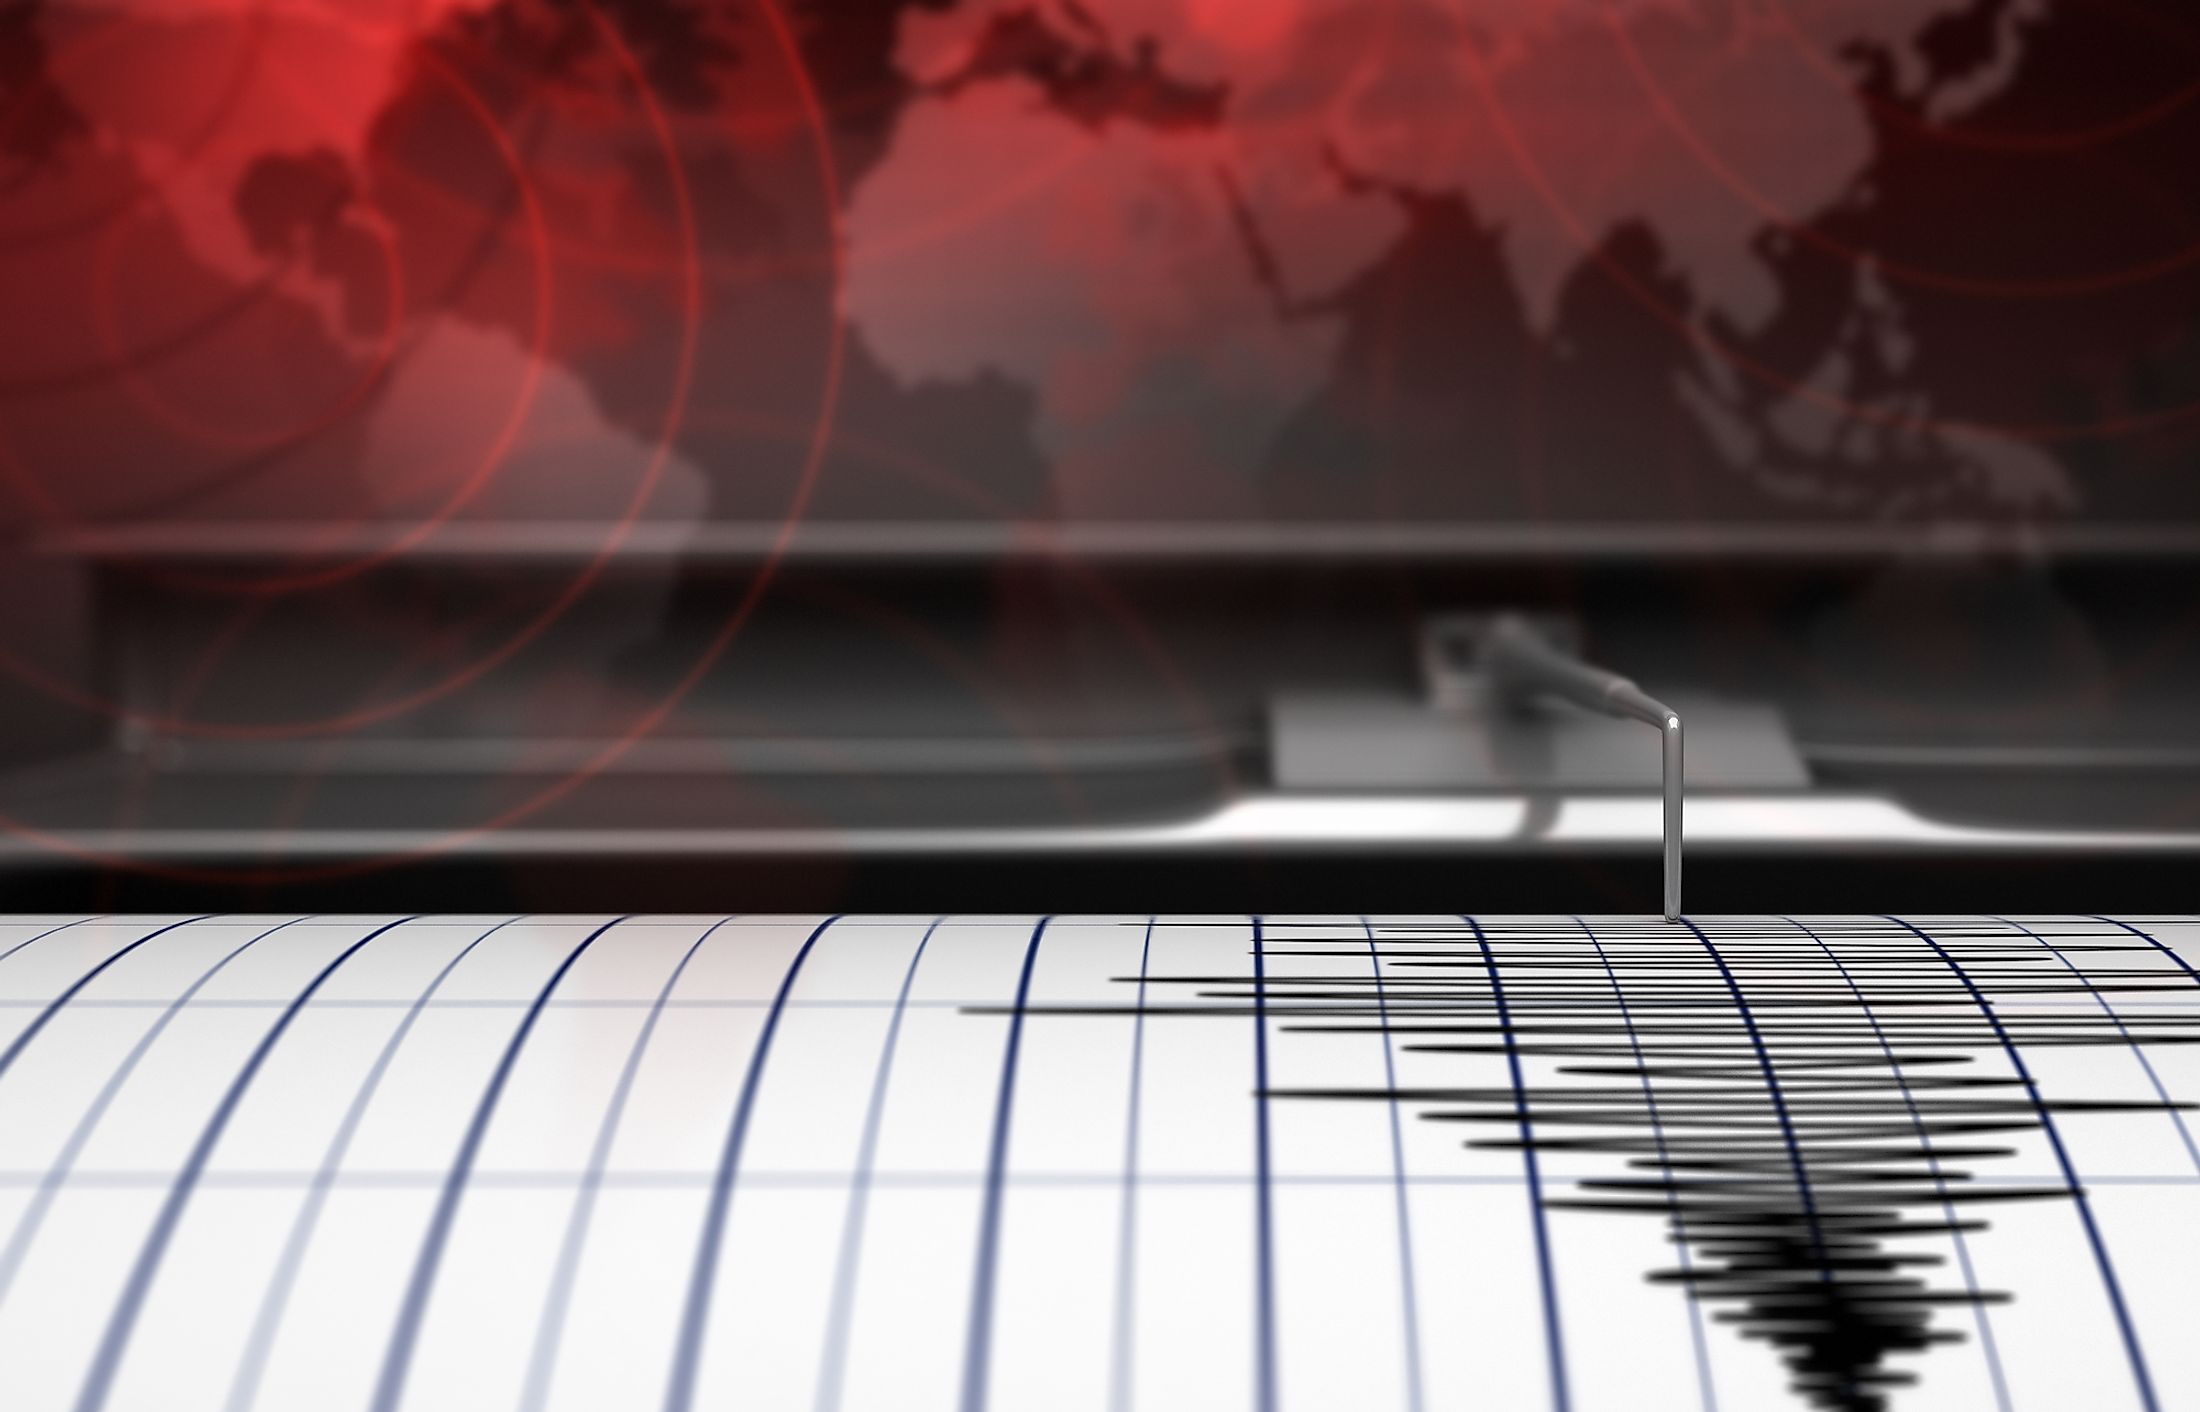 Earthquakes are measured with the help of a seismograph. Image credit:  Andrey VP/Shutterstock.com